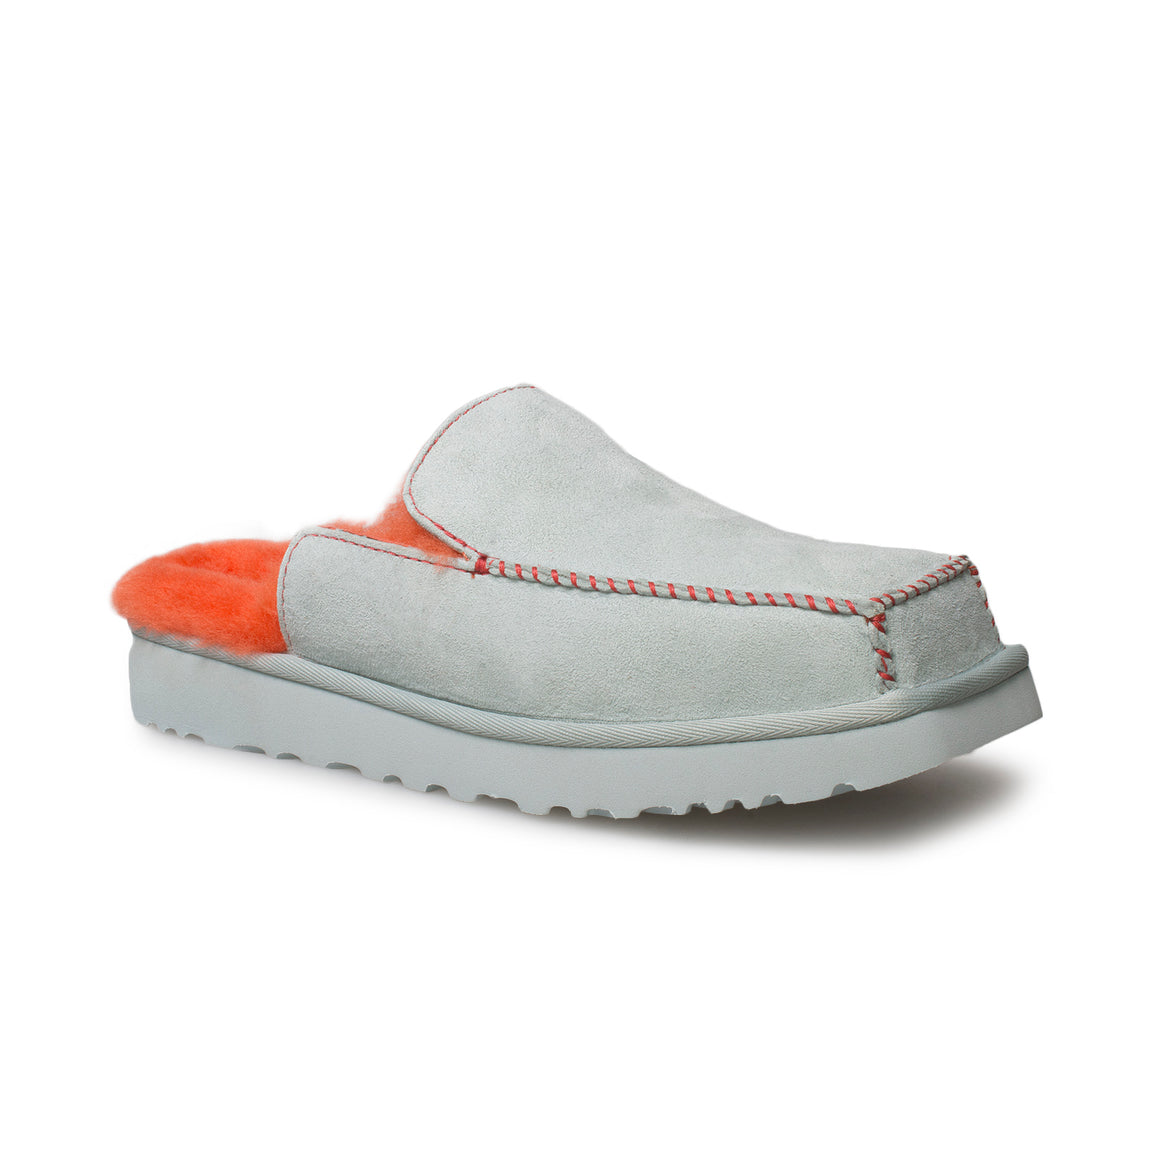 UGG Eckhaus Latta Block Slide Sky Grey Mandarin Orange Shoes - Women's